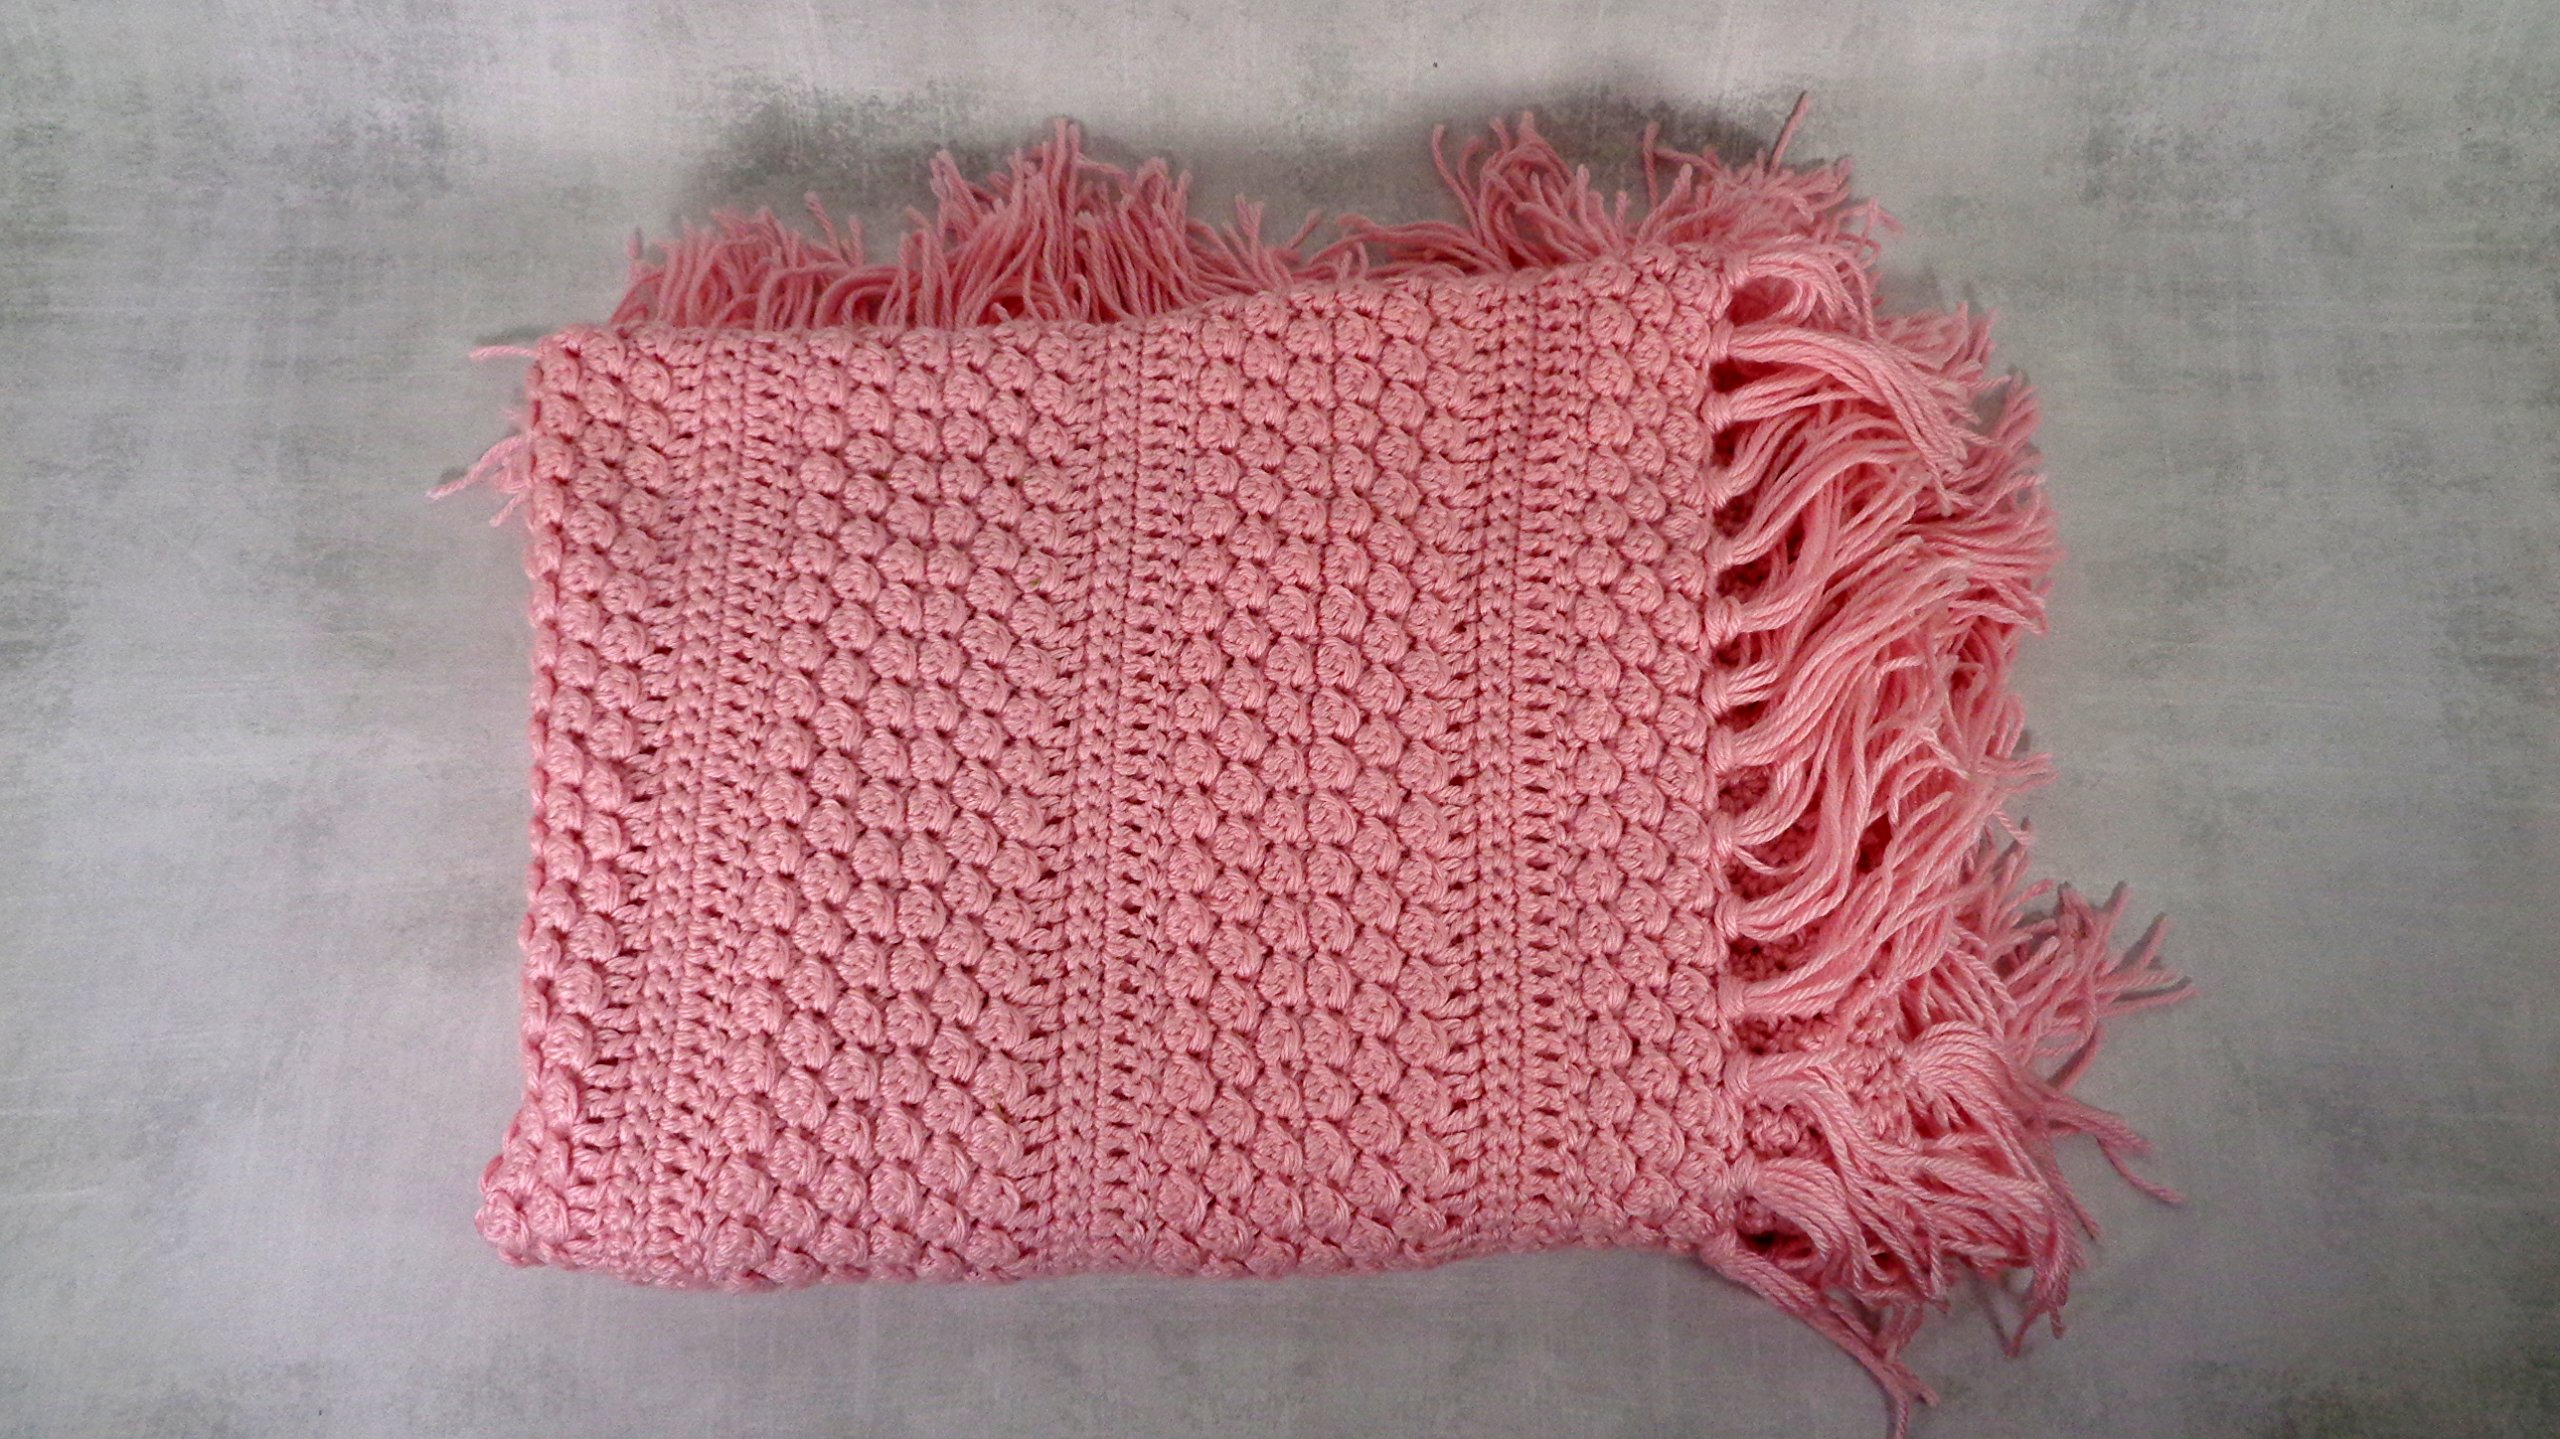 Pink baby infant child crib cover blanket afghan throw baby shower gift